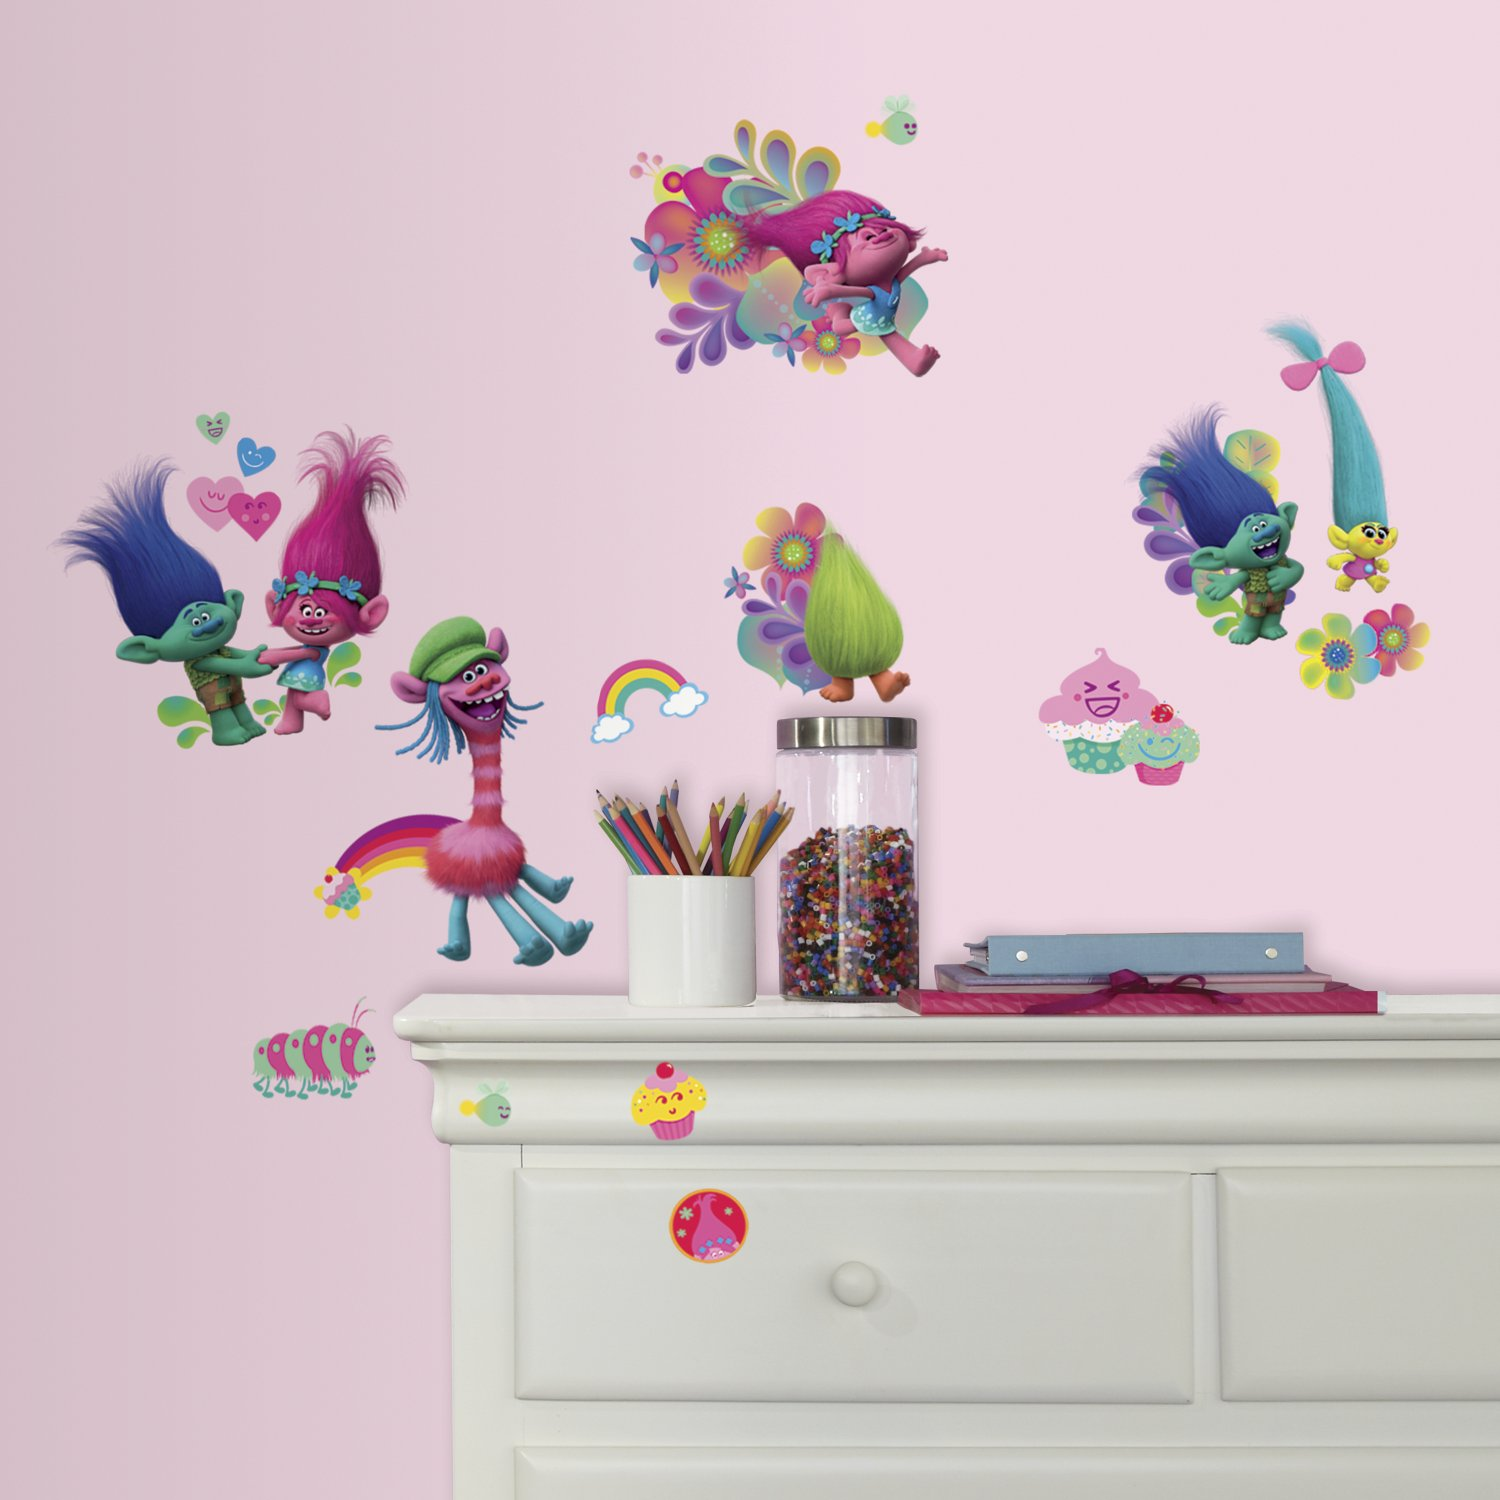 Roommates rmk3400scs trolls wall decals amazon amipublicfo Choice Image